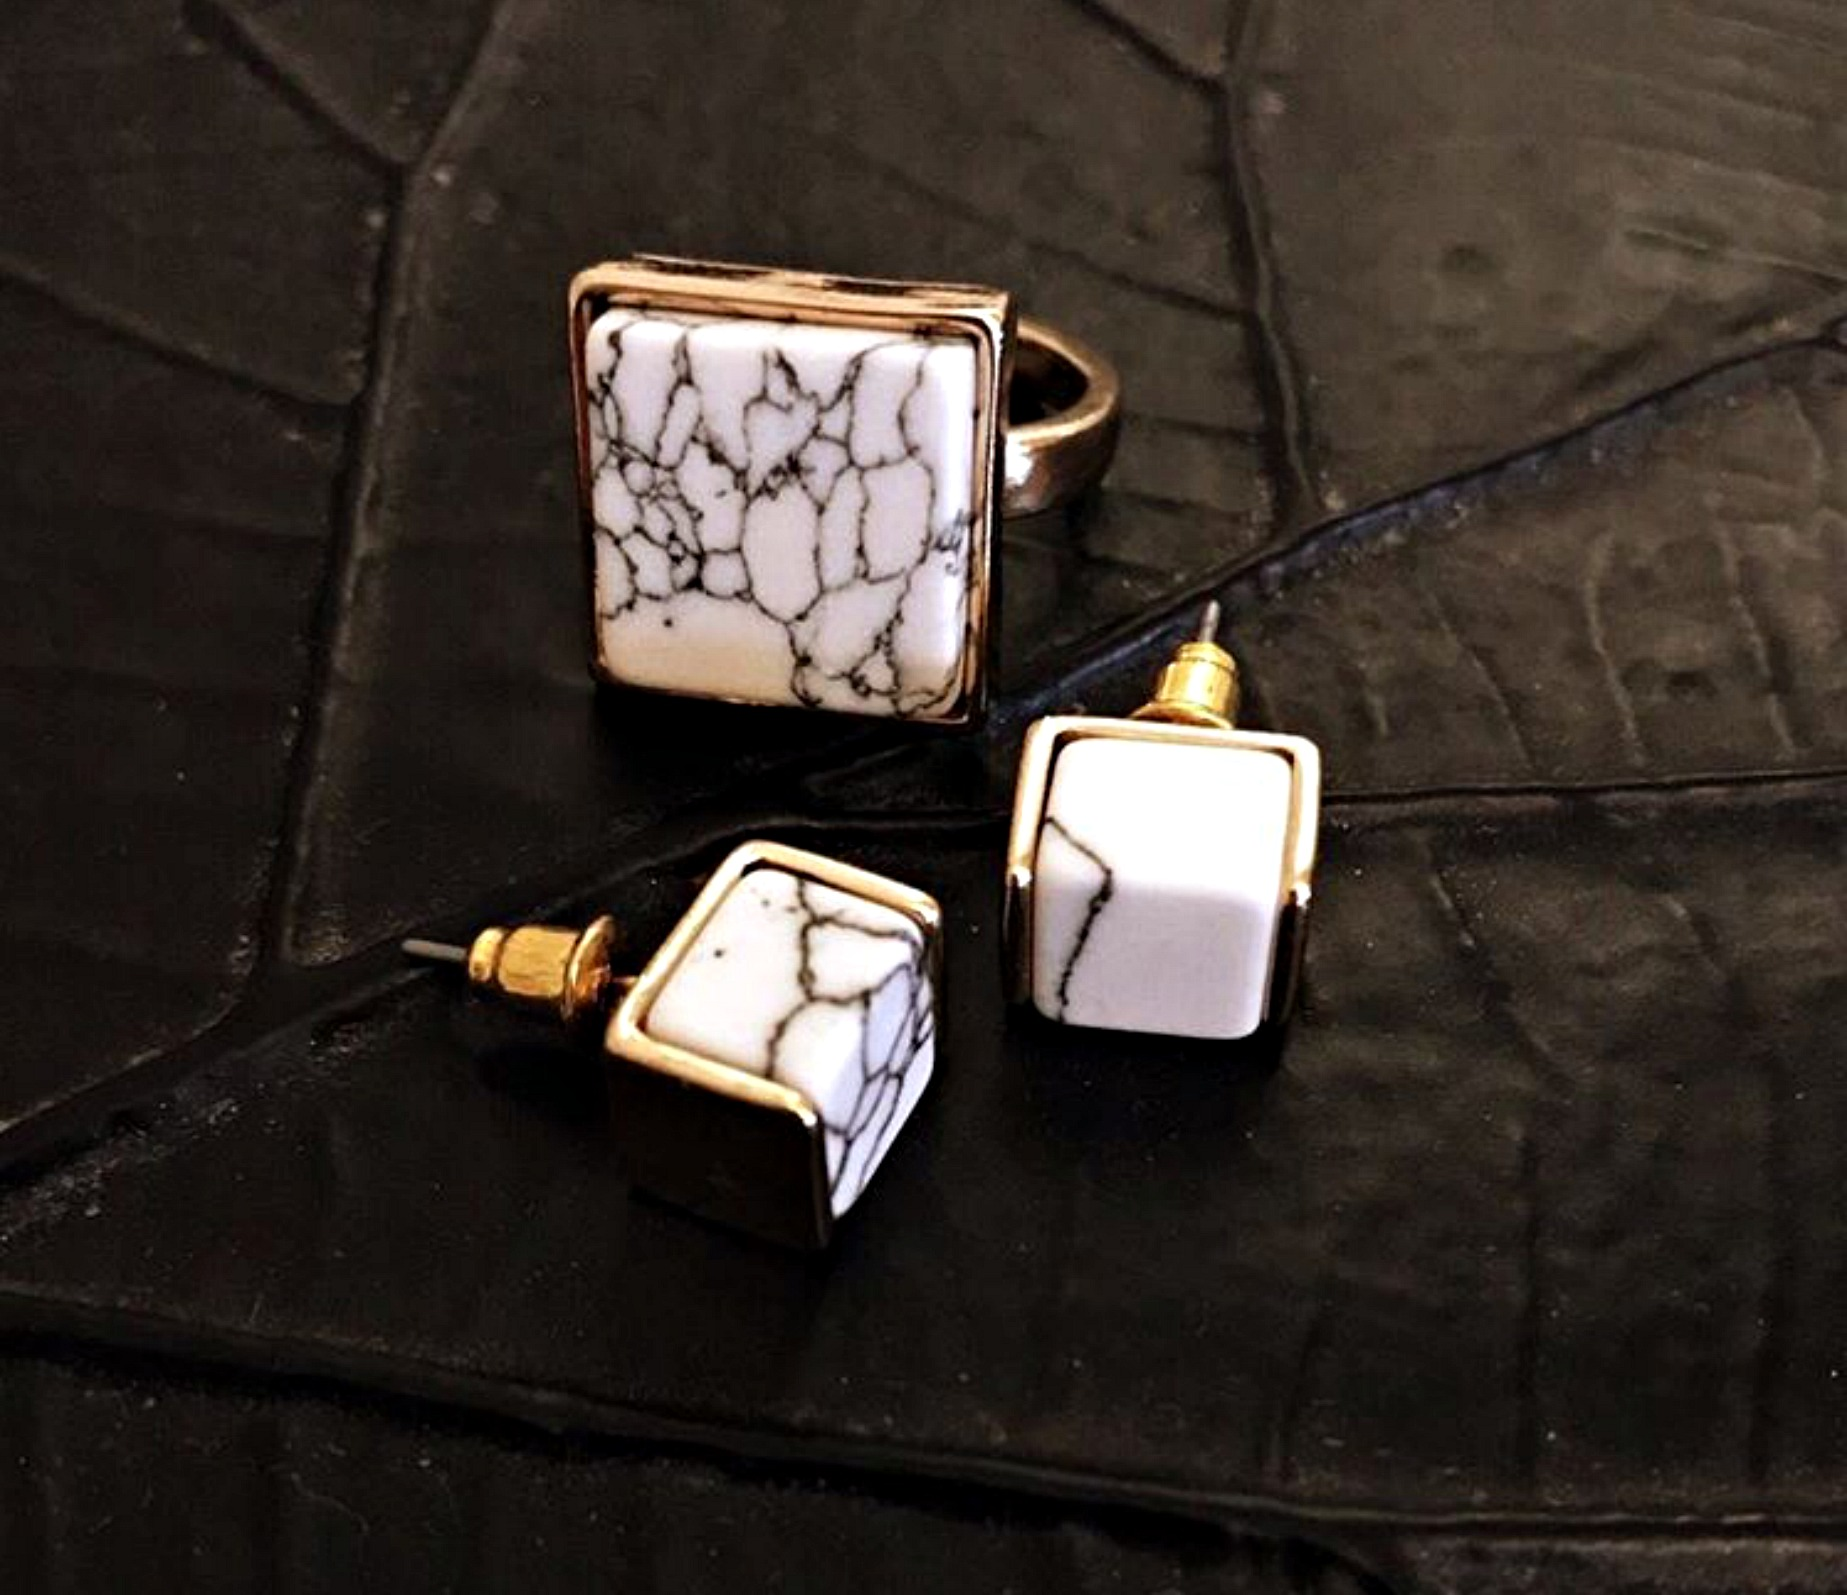 marble ring and earrings